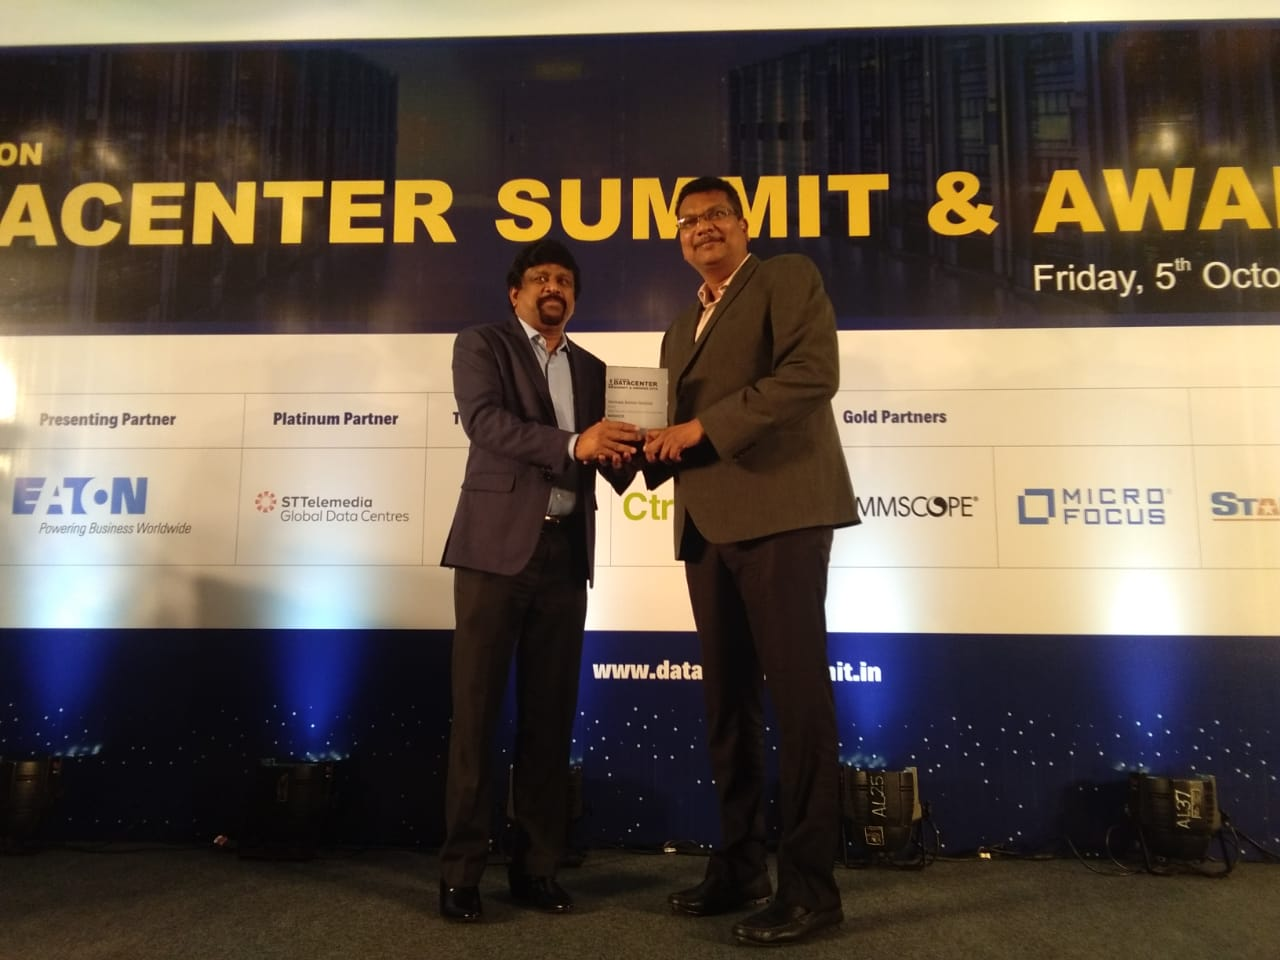 Venkata Satish Guttula, Director IT Security Data Security Award 2018